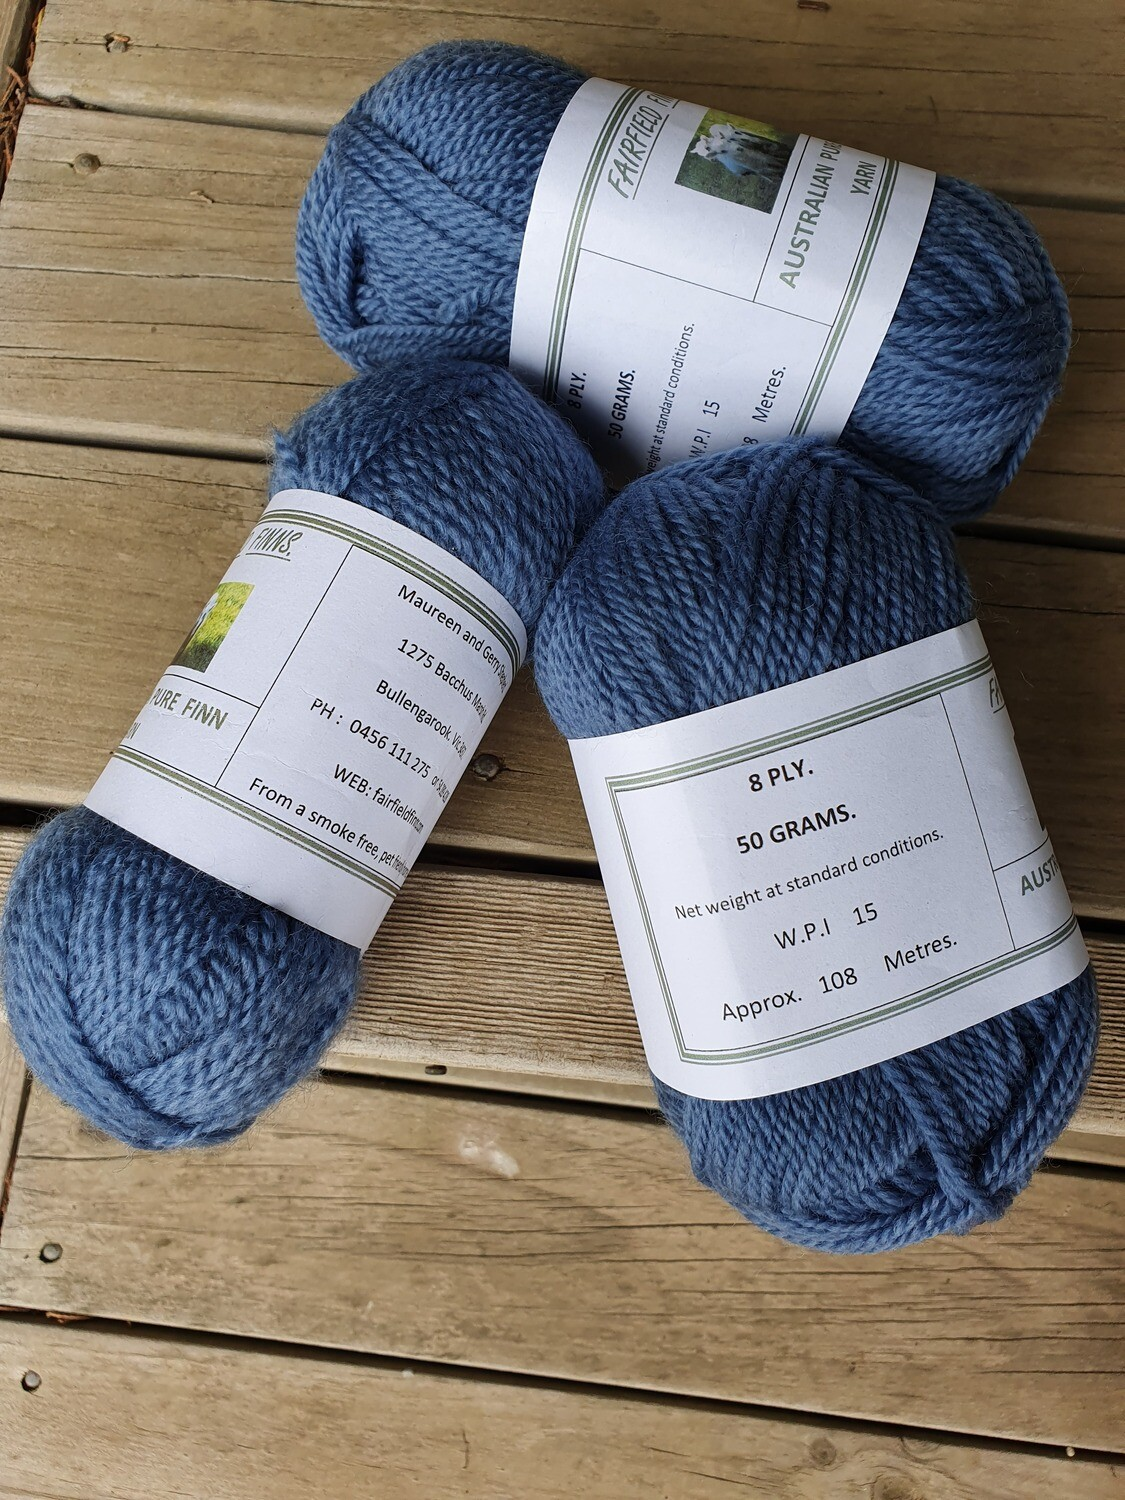 Commercially dyed Denim balls. 8 ply.